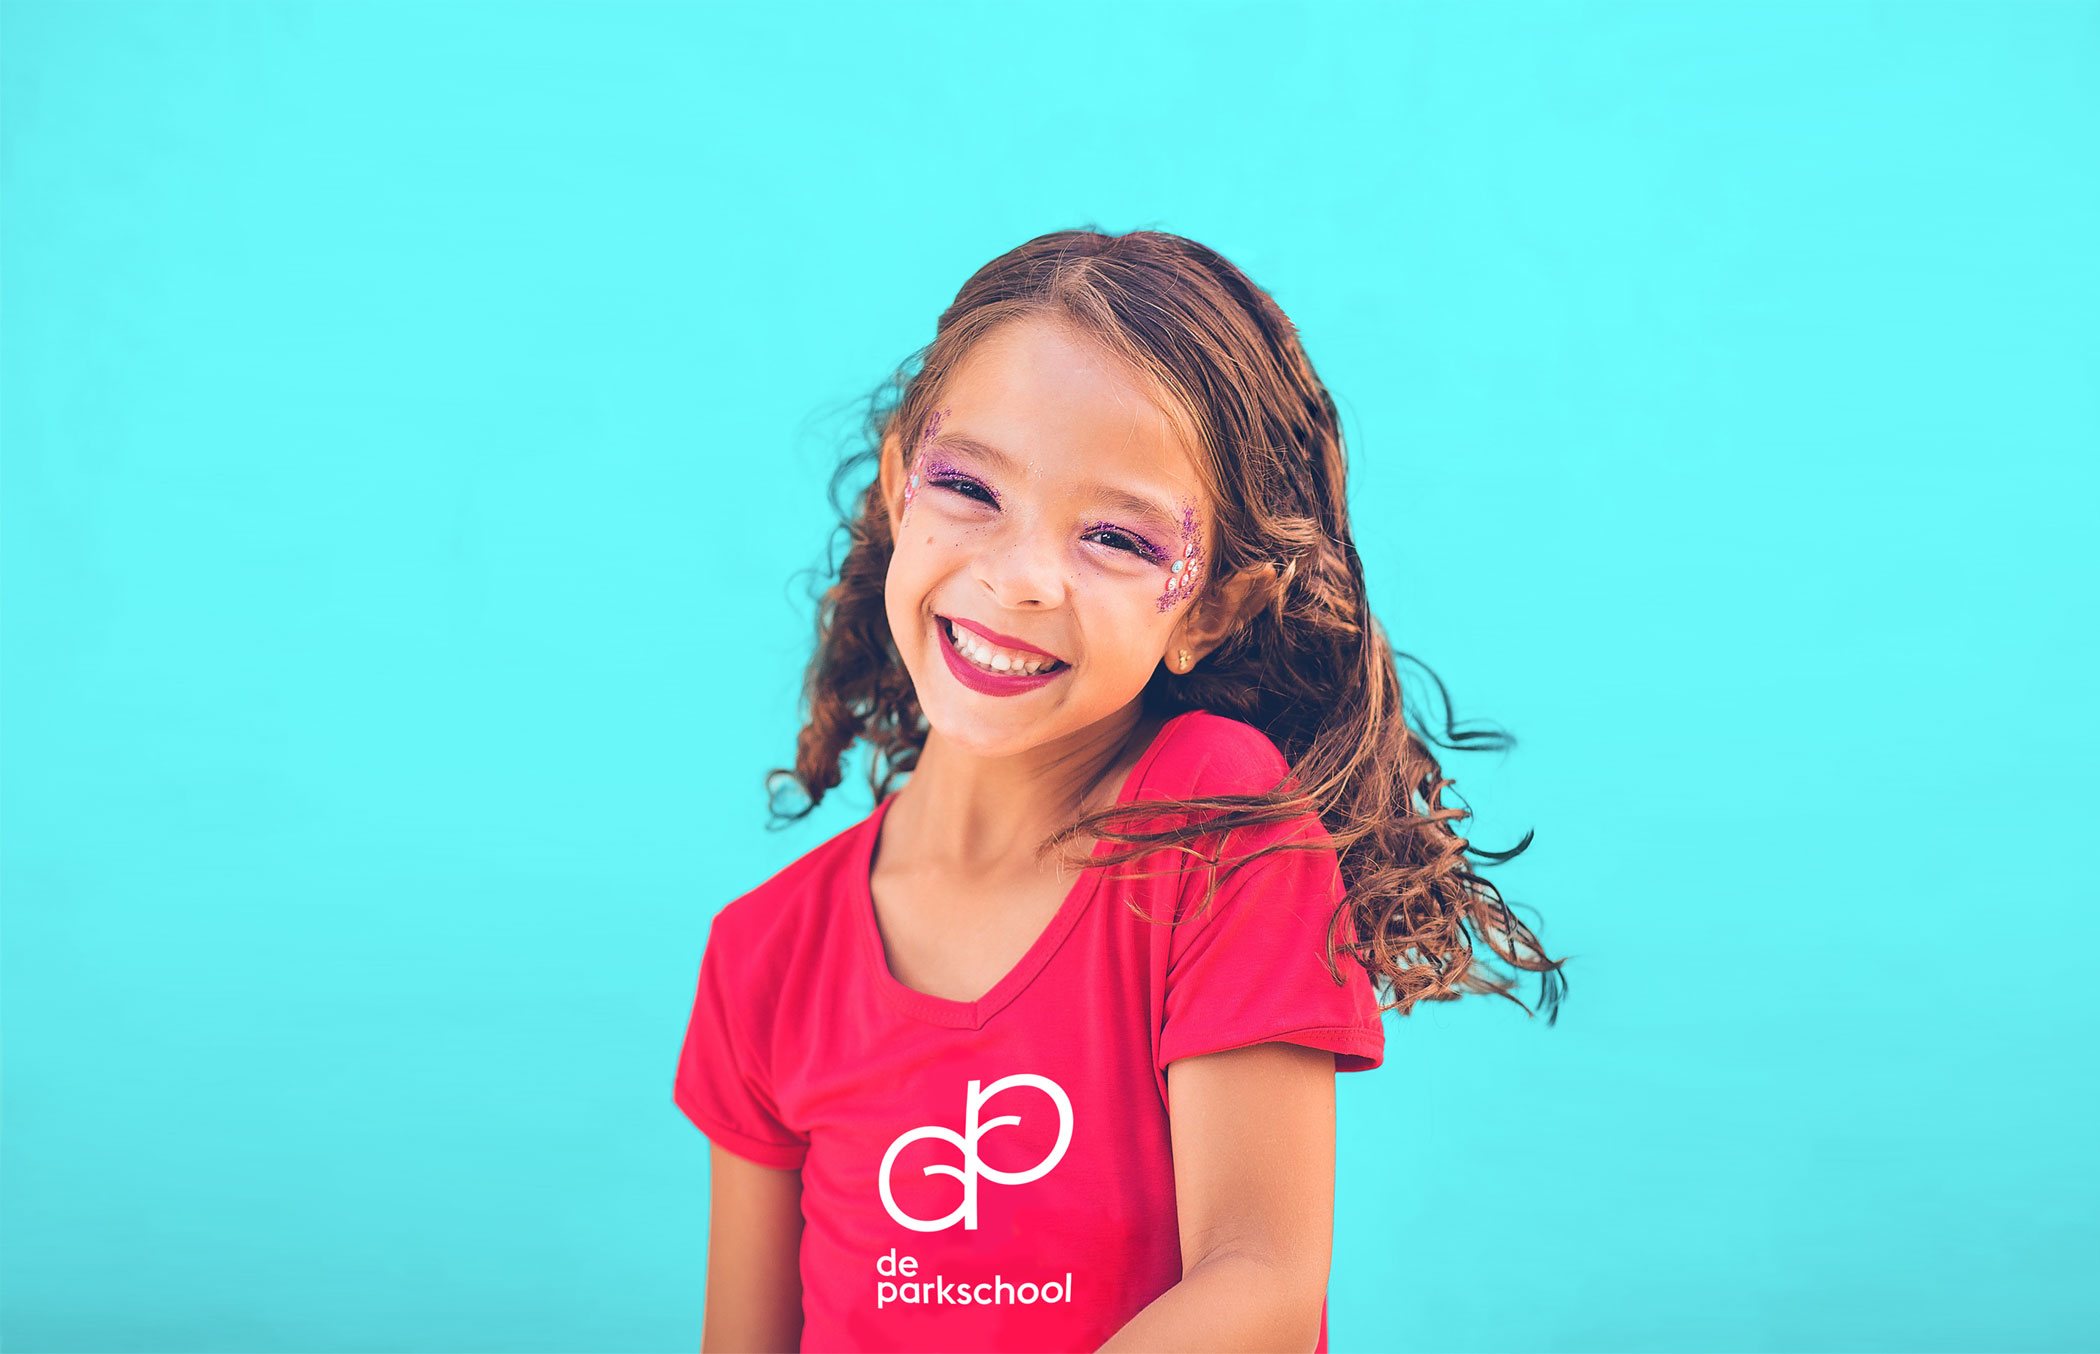 smiling girl with De Parkschool logo on her shirt